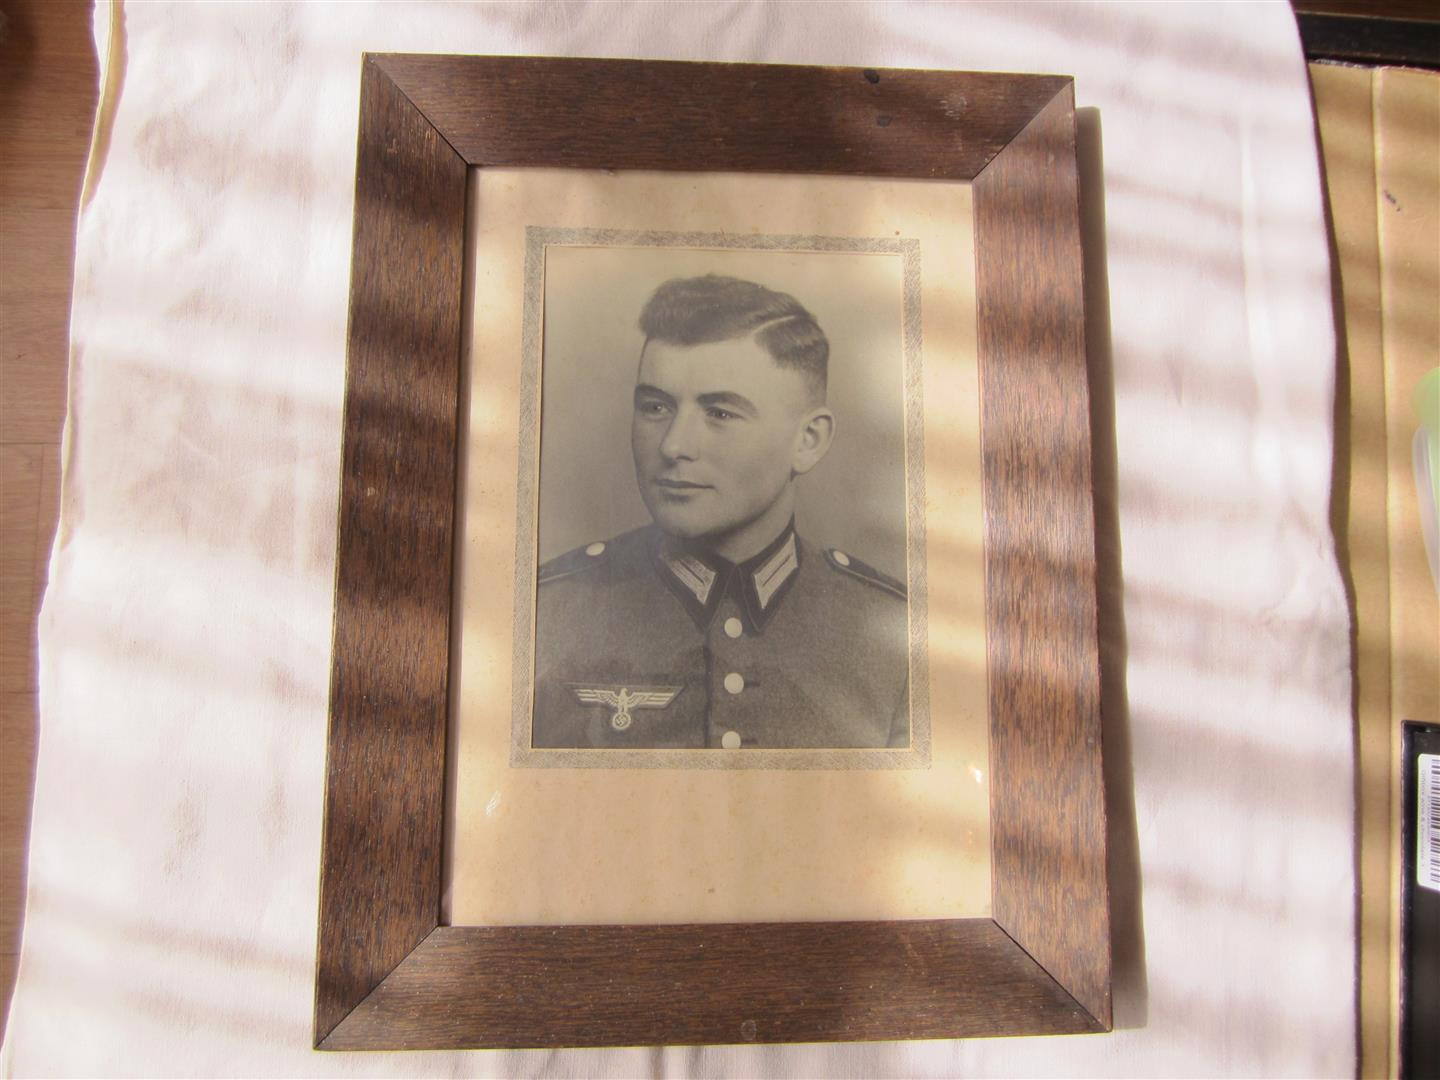 WW2 WH Photo of Soldier in Dress Uniform